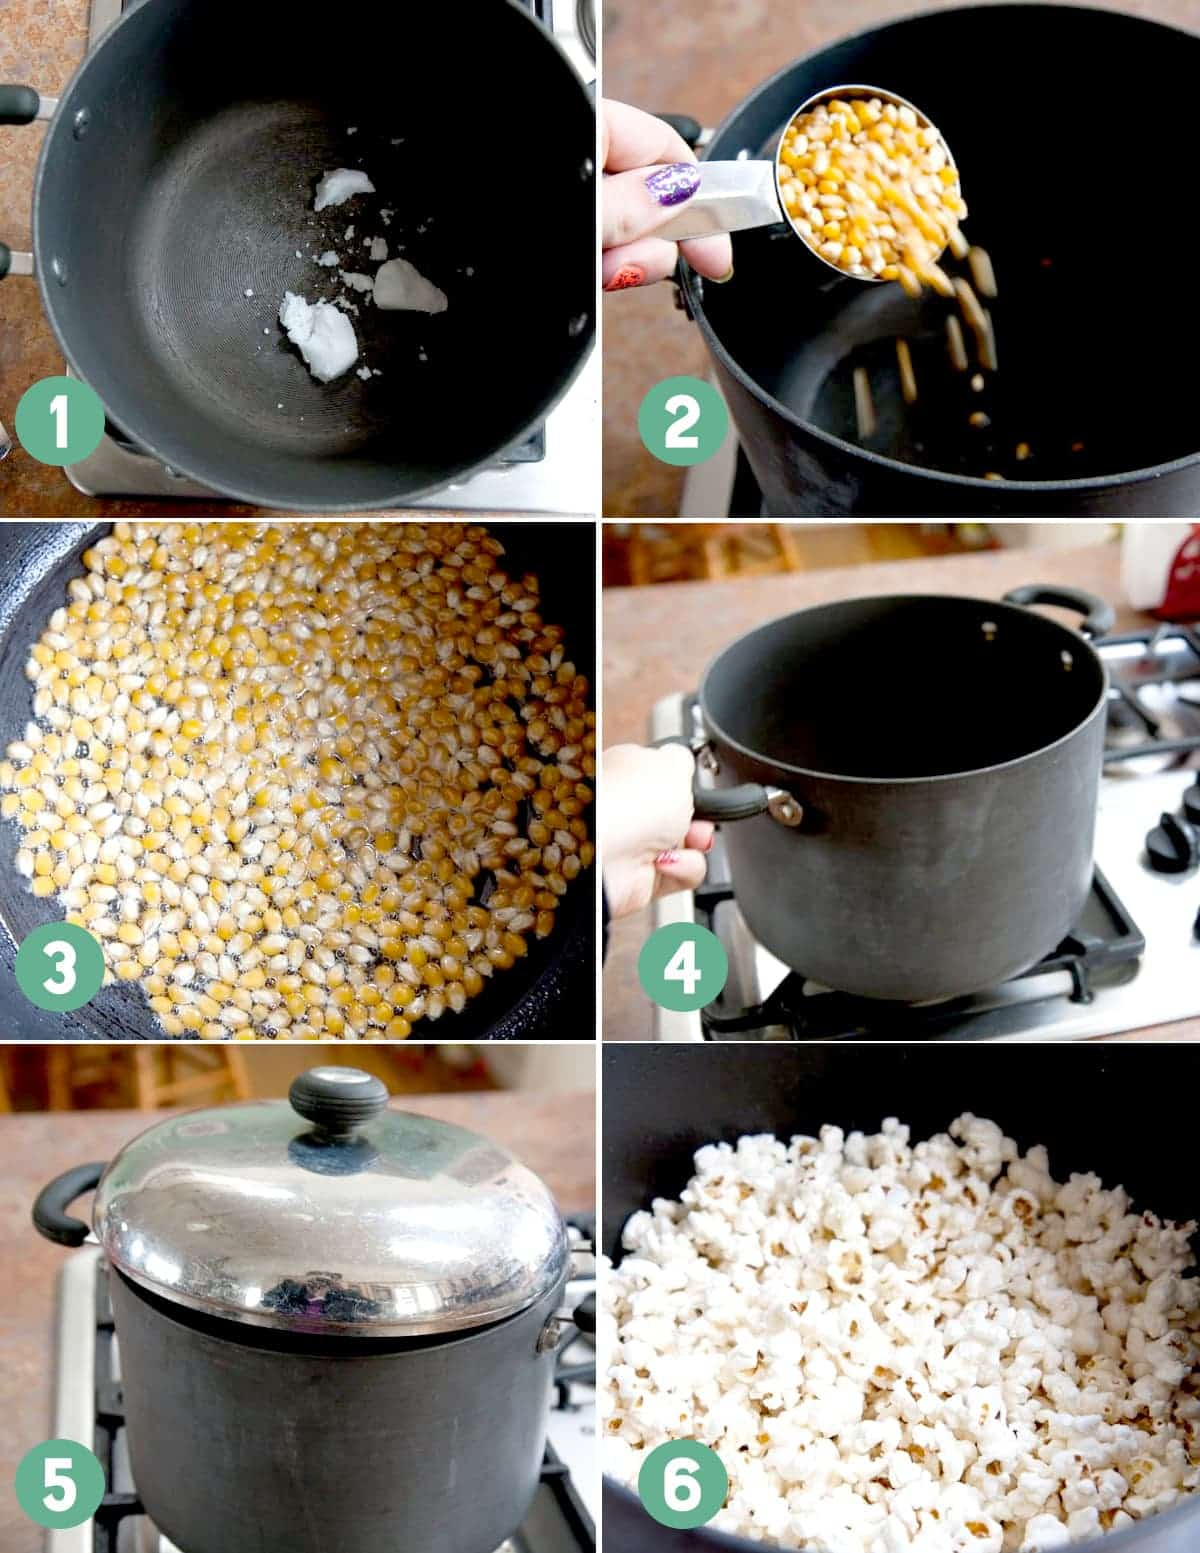 Numbered images show the steps for making popcorn on the stove.